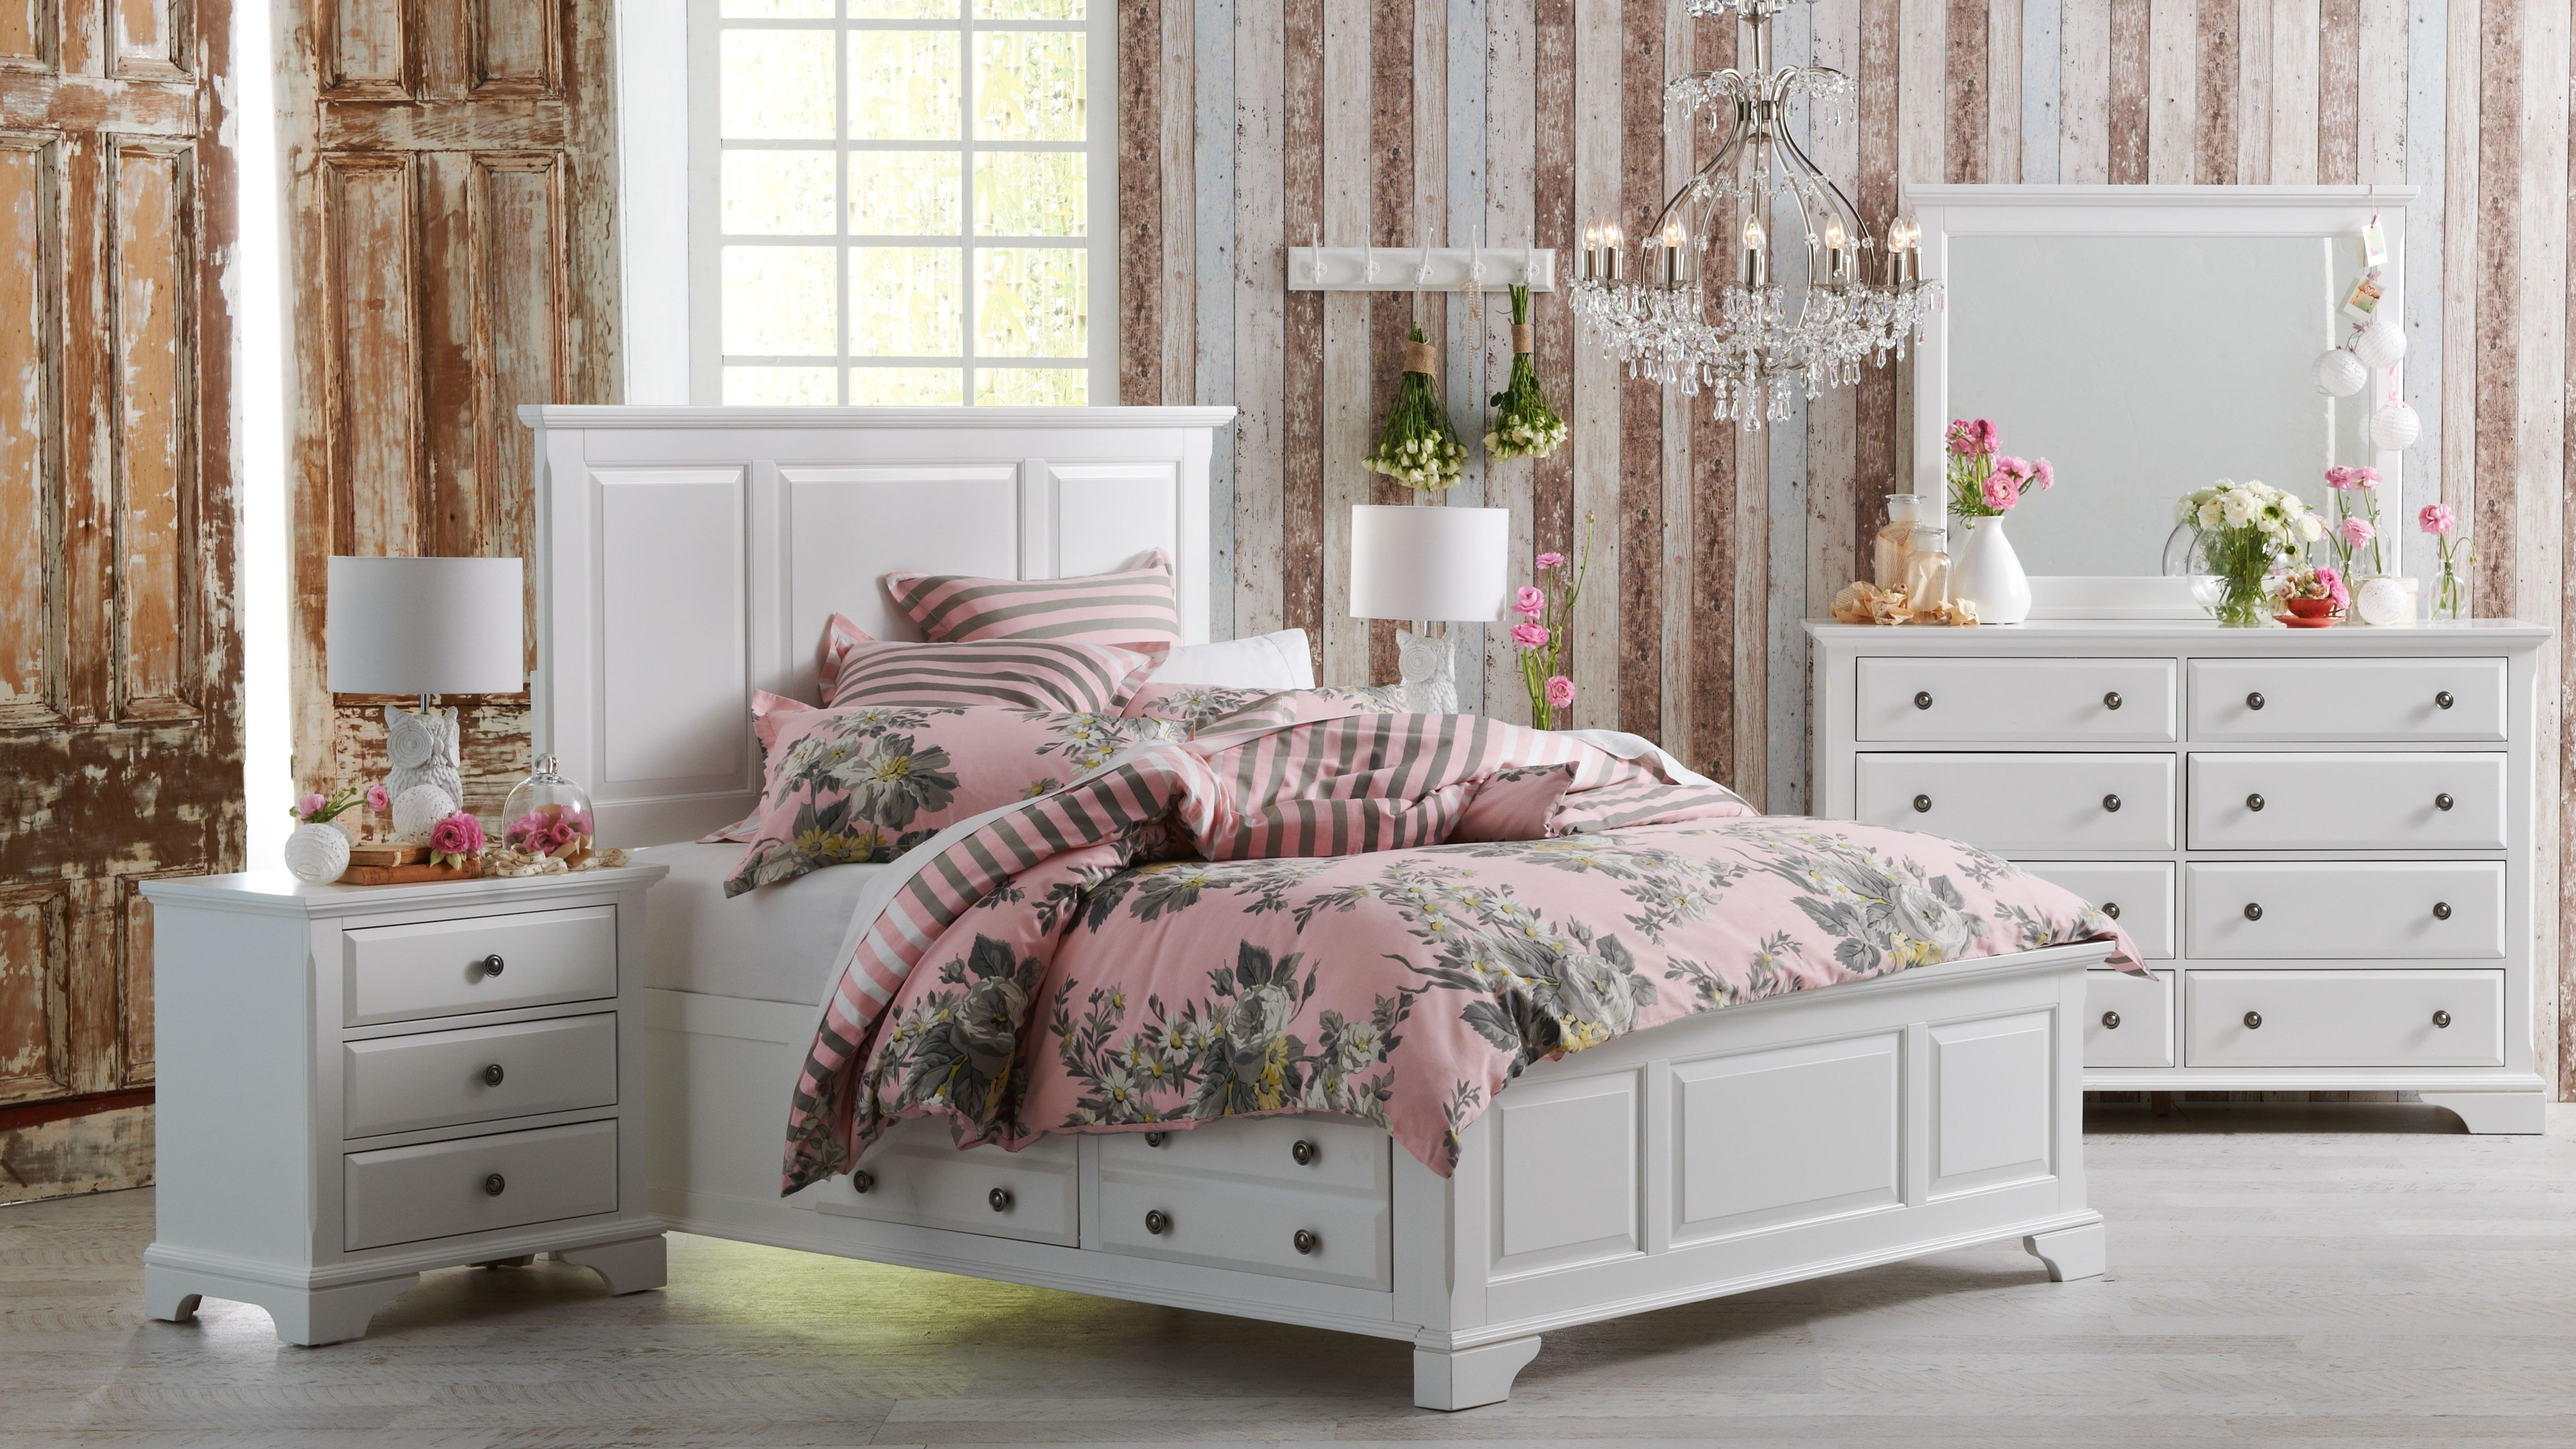 Impression Queen Bed Harvey norman | Farmhouse decor ...